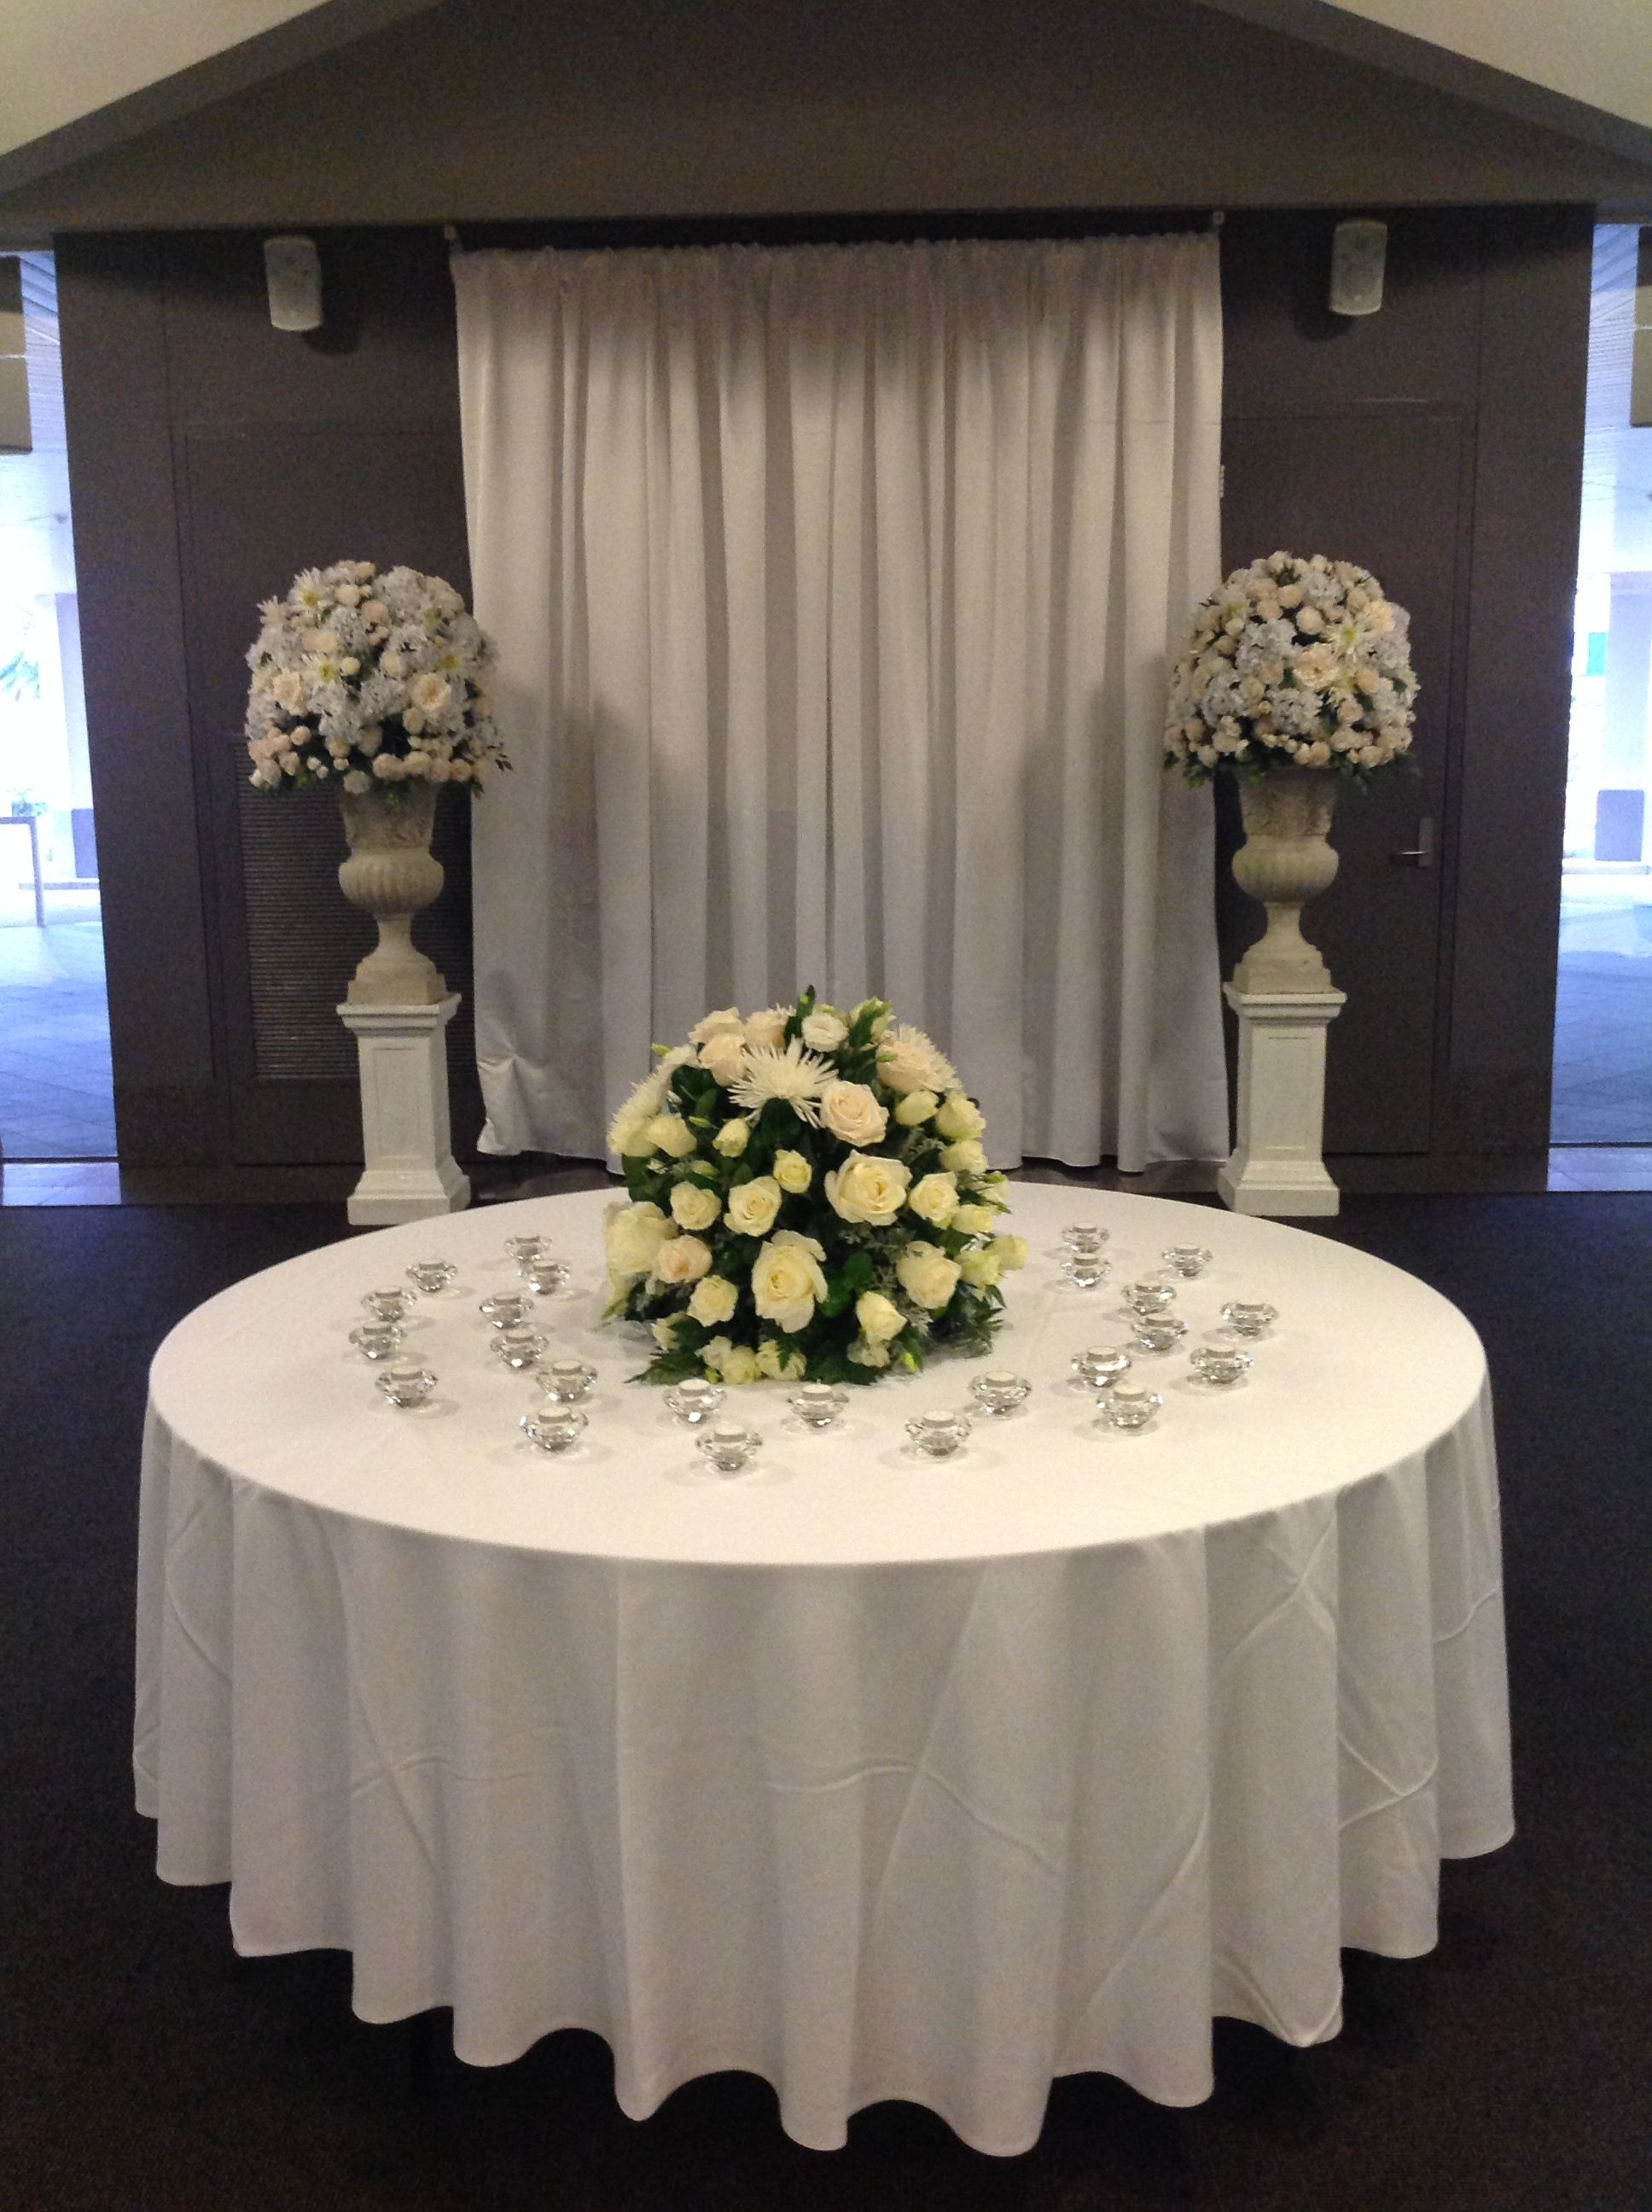 Foyer decoration of donato reception centre in adelaide www foyer decoration of donato reception centre in adelaide houseofthebride junglespirit Image collections